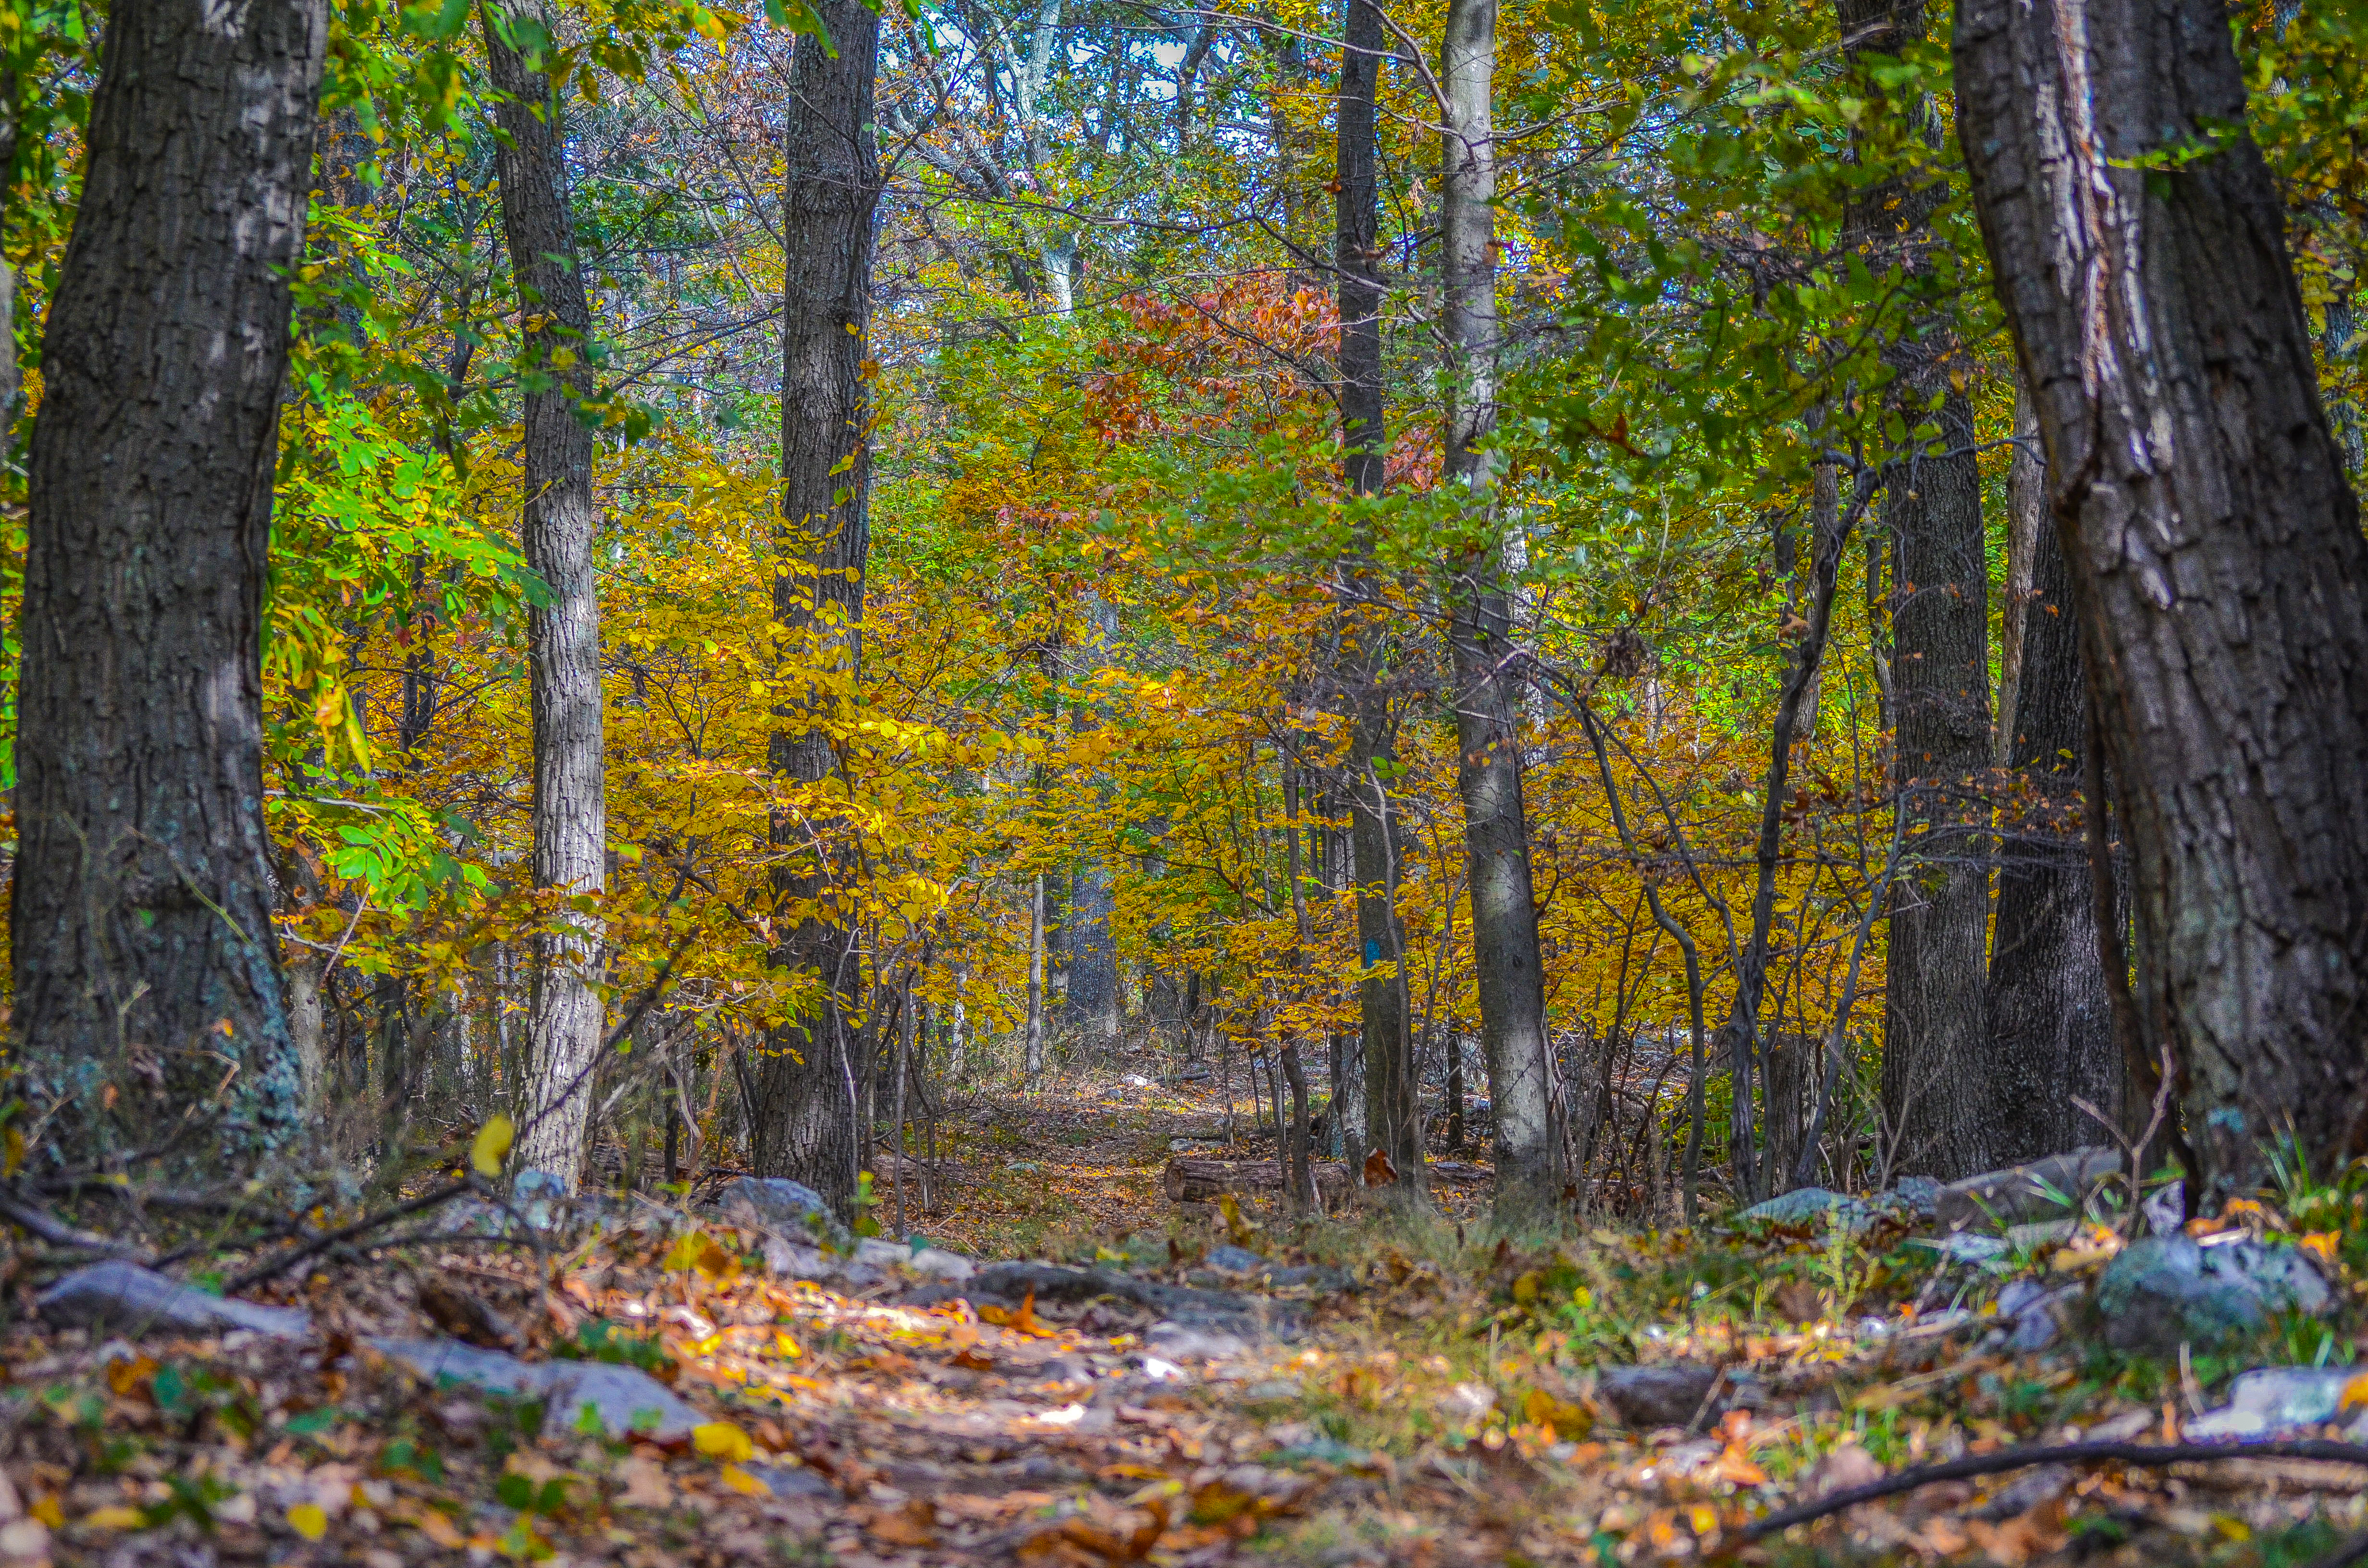 Trail on Loudoun Heights, Creek, Foliage, Forest, Landscape, HQ Photo